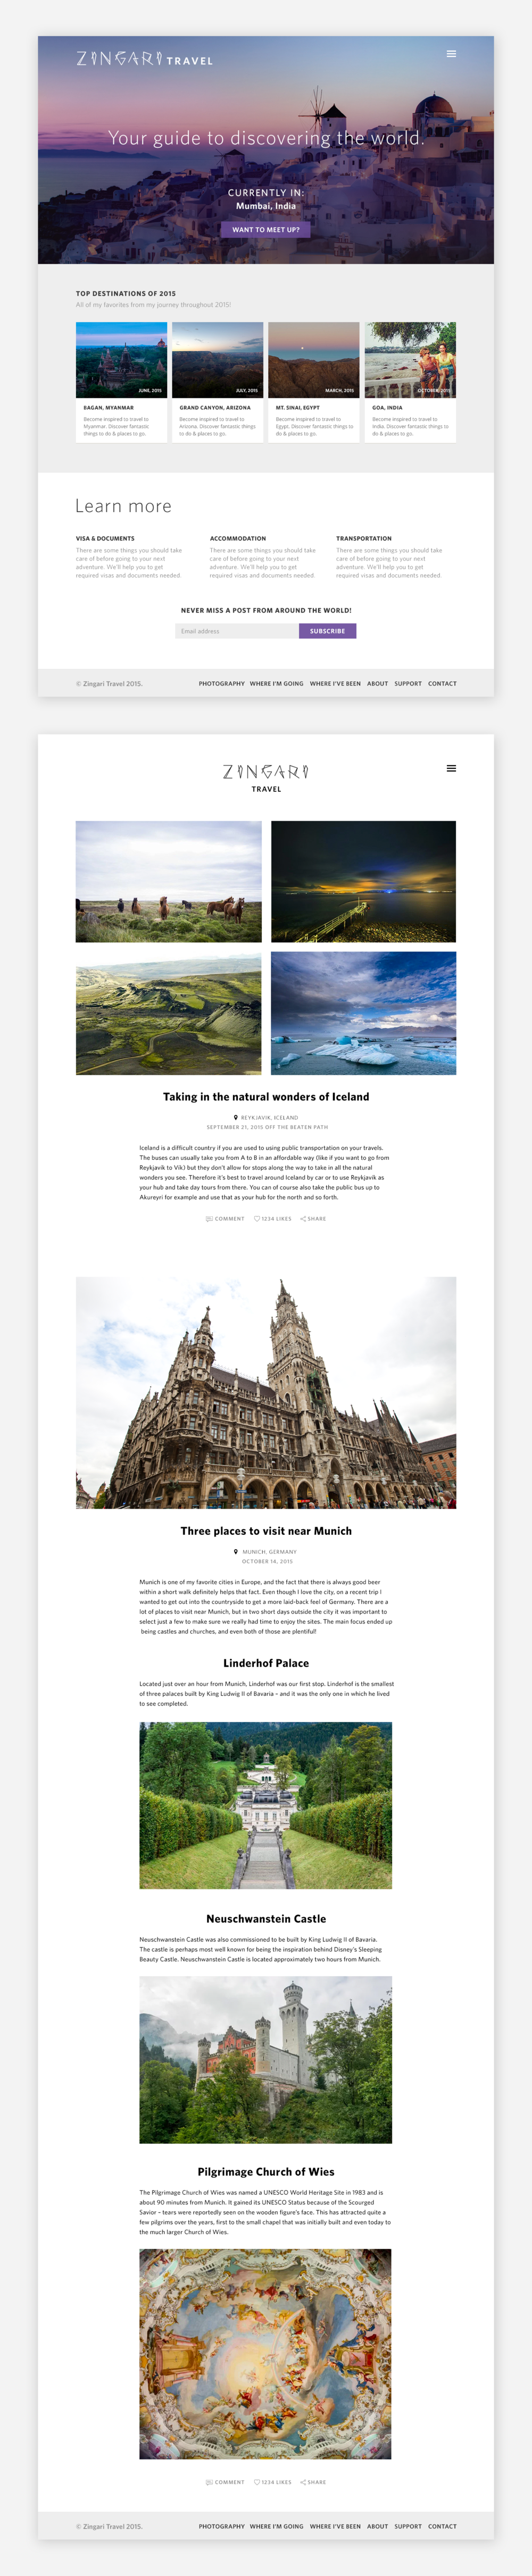 Zingari Travel Landing Page and Blog Post